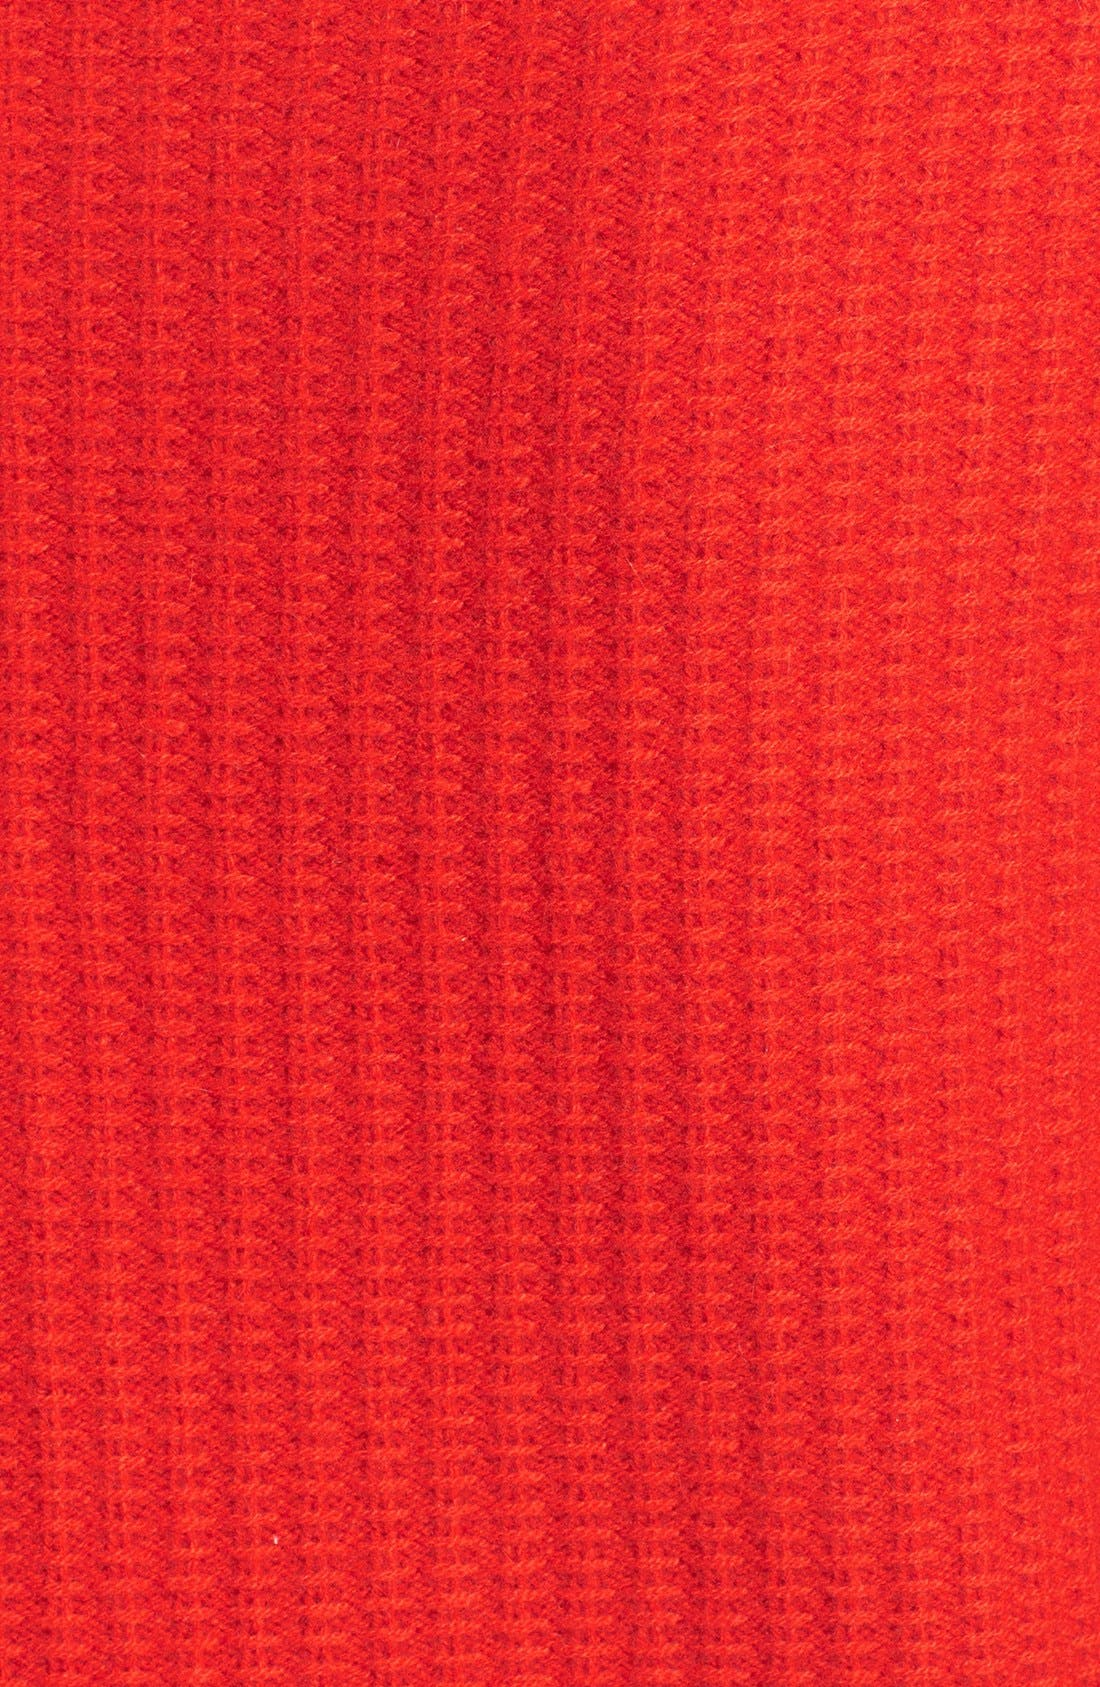 Alternate Image 3  - Nordstrom Collection Textured Stitch Cashmere Boatneck Sweater